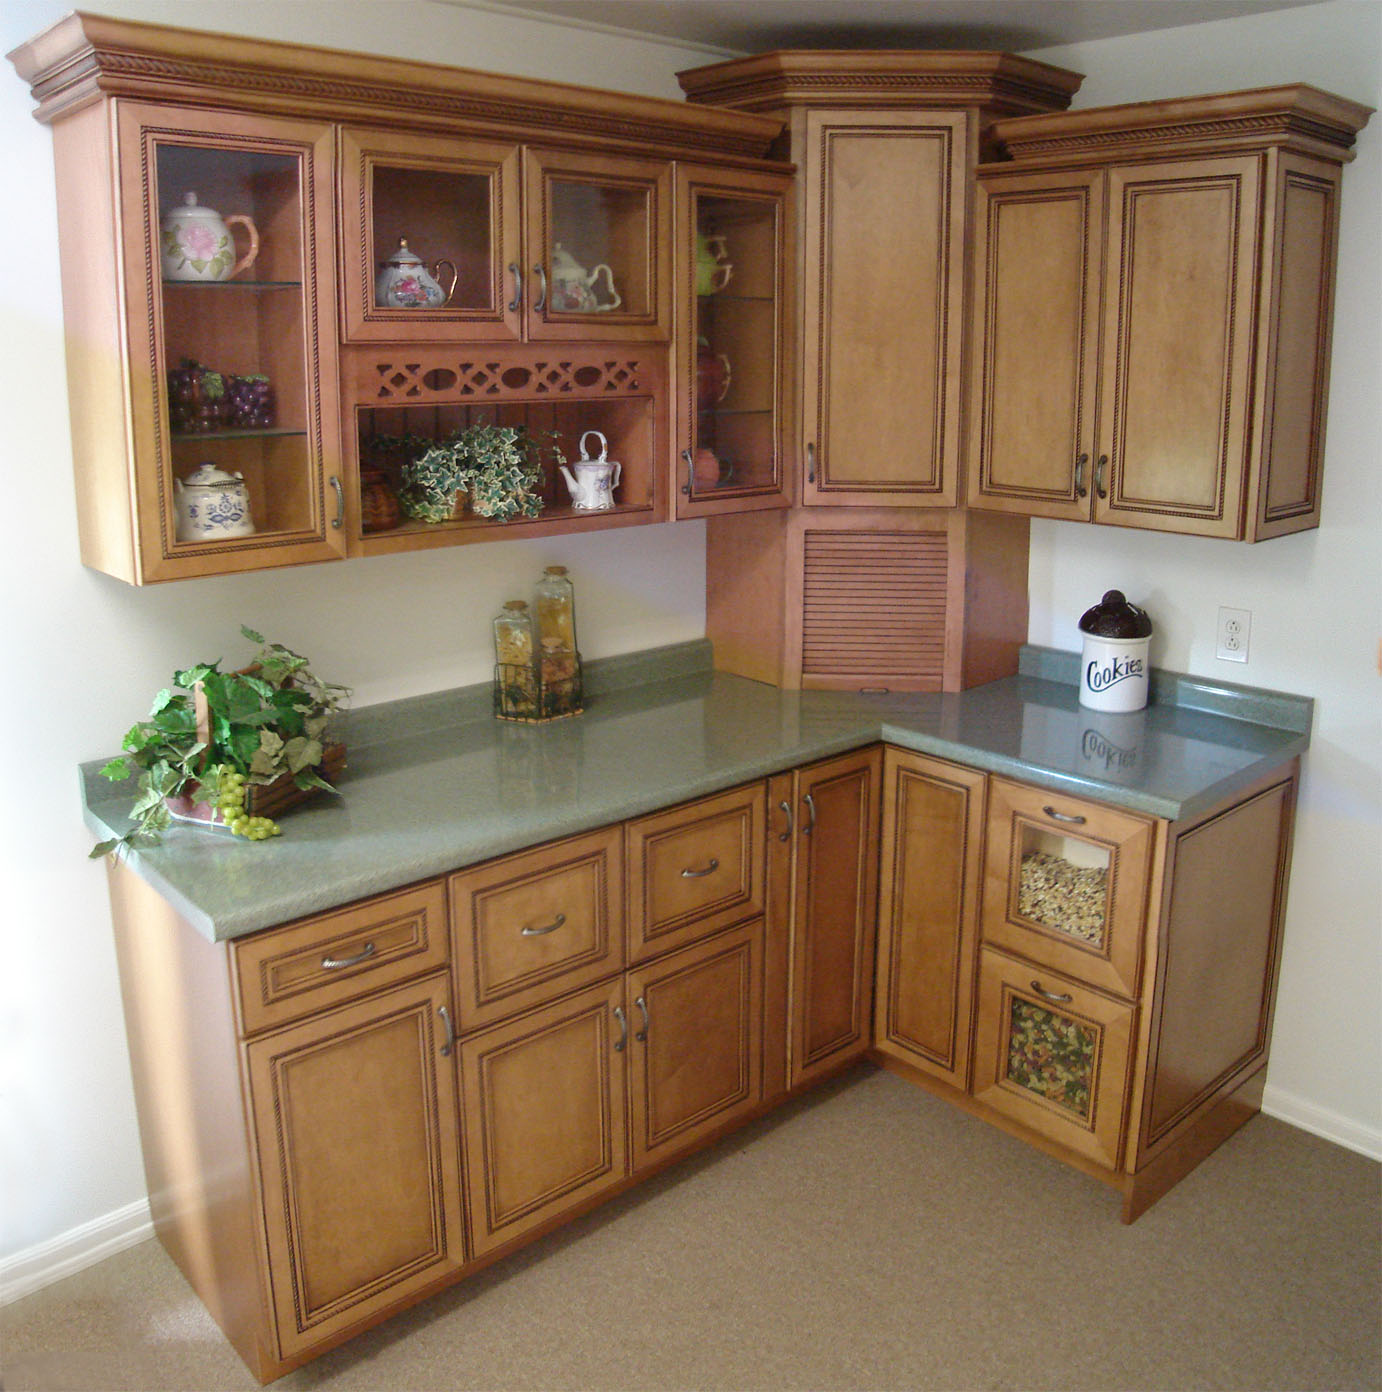 Hickory kitchen cabinets lowes - How To Get Kraftmaid Cabinet With Cheaper Price Home And